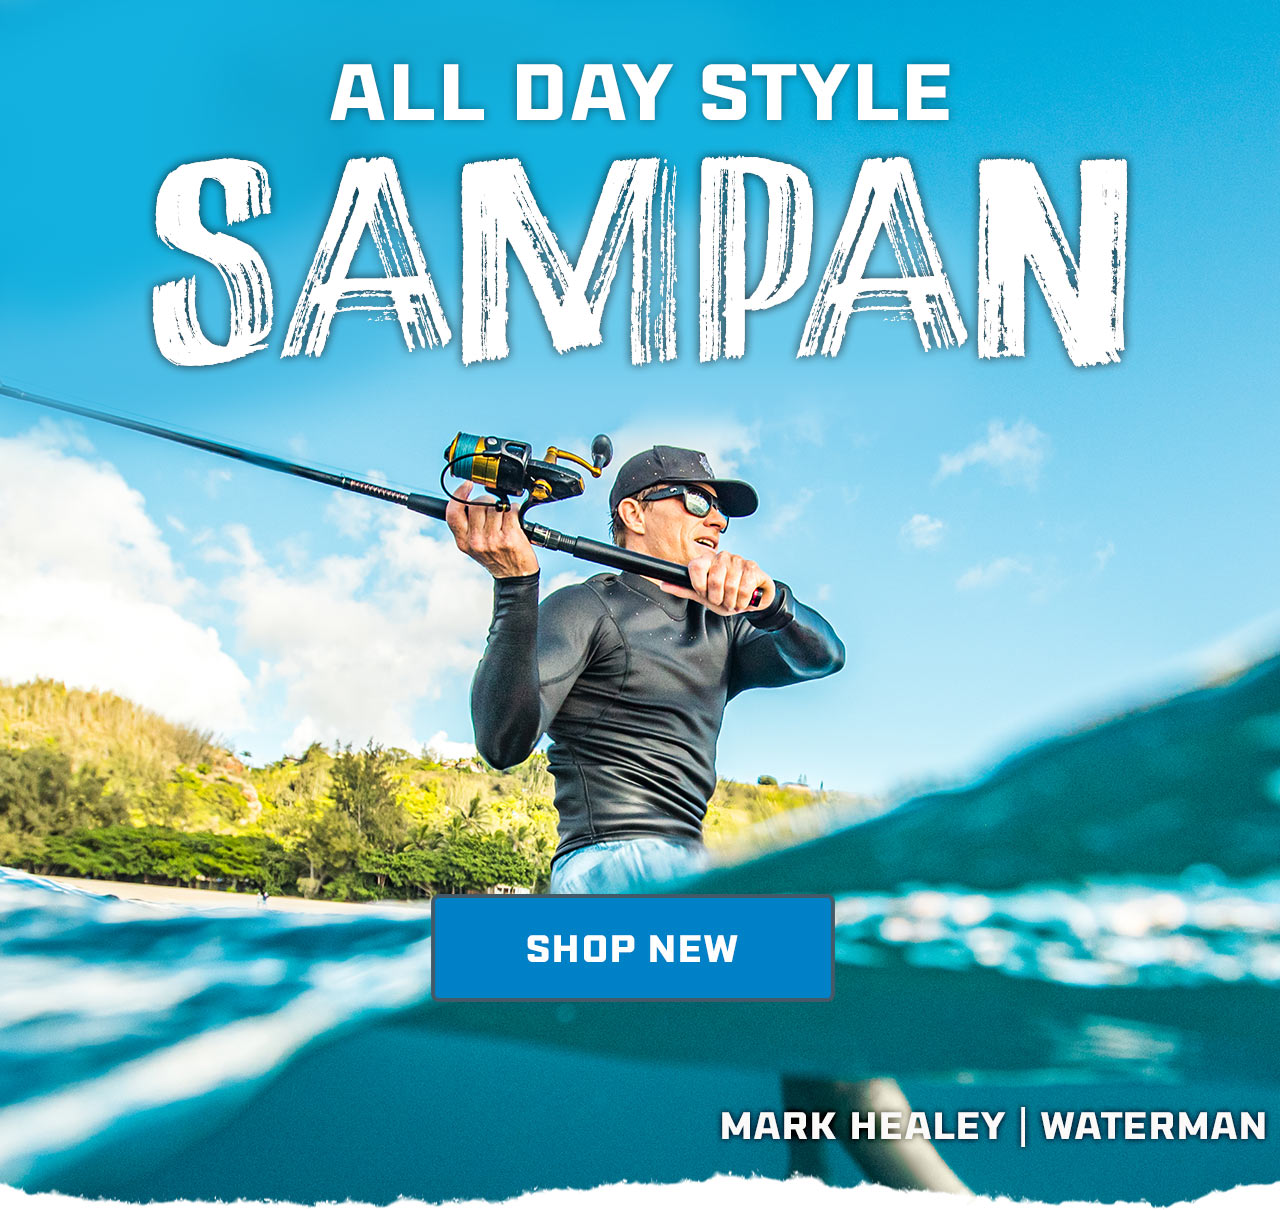 All Day Style - Sampan